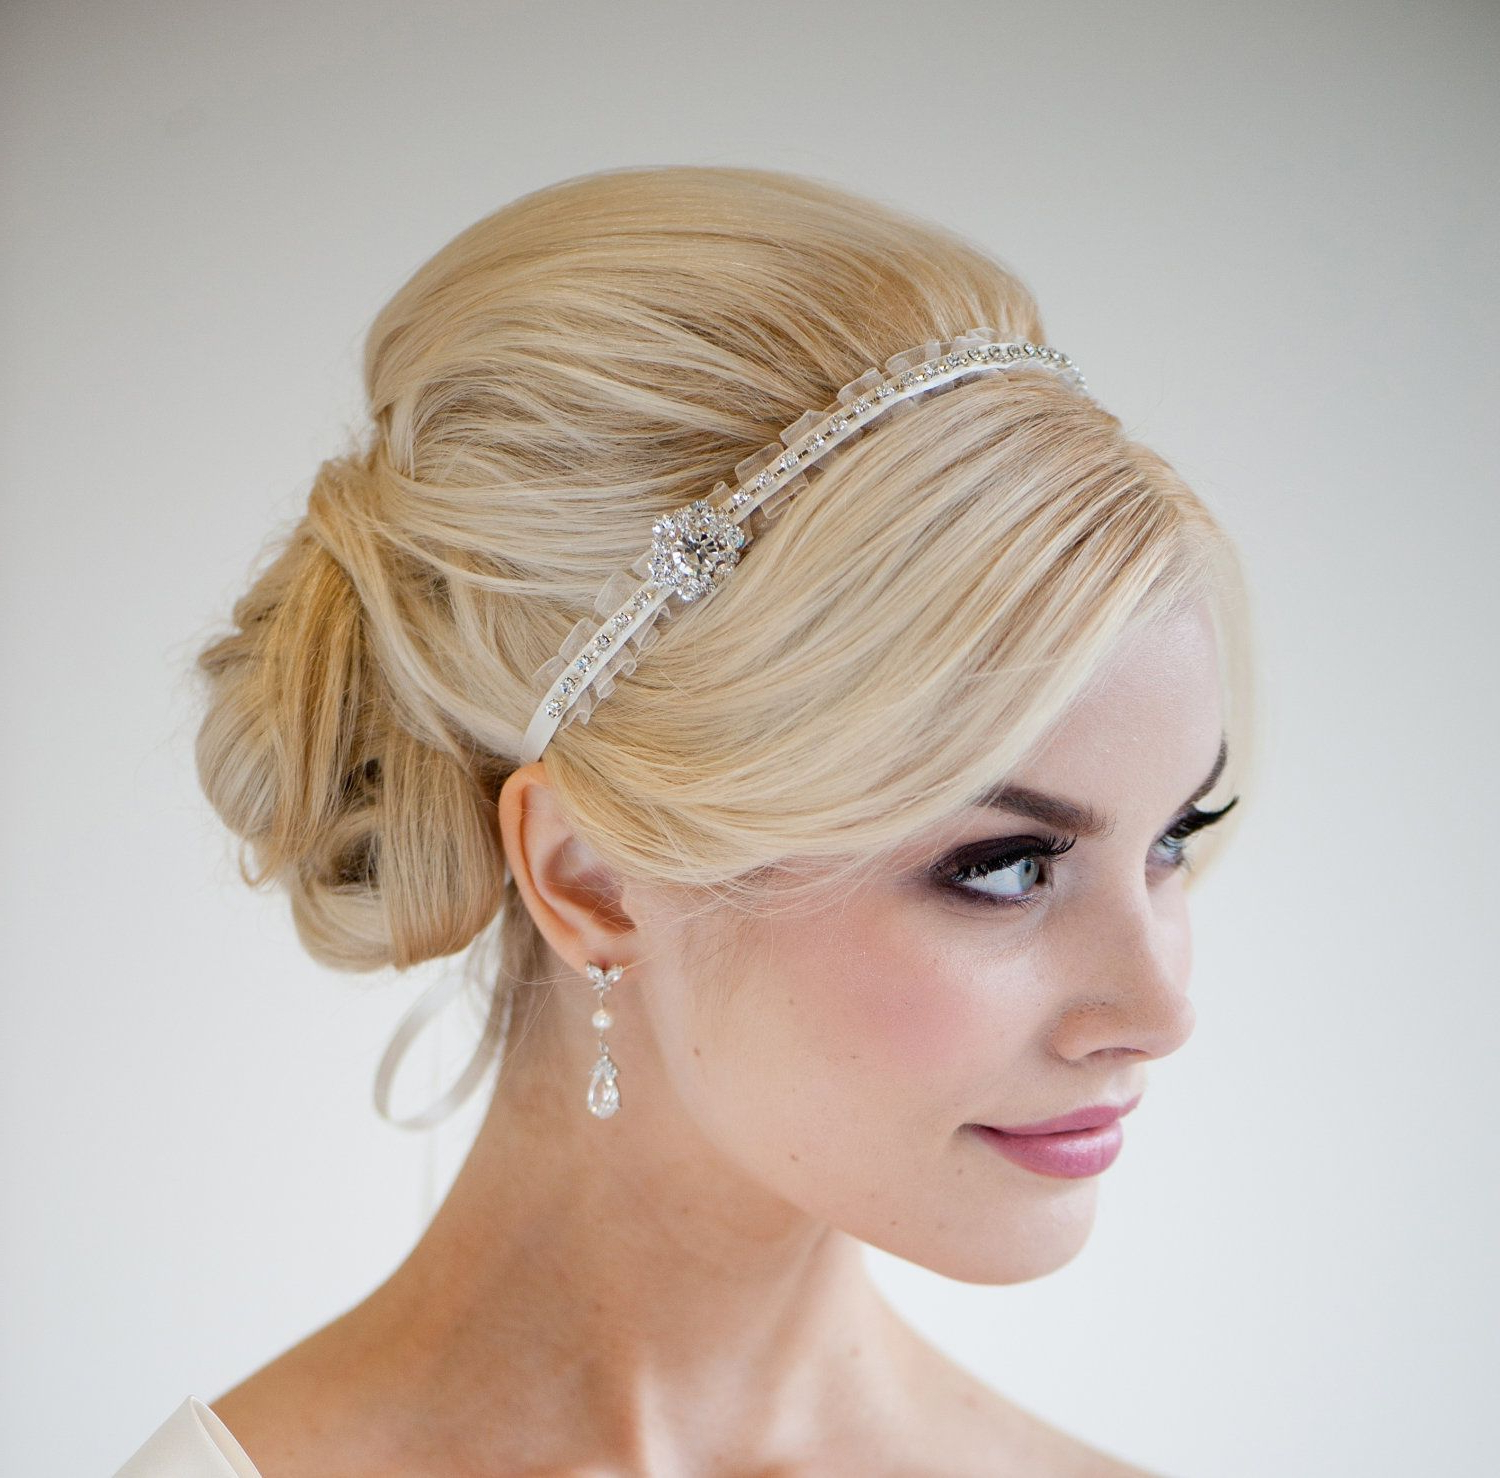 Favorite High Updos With Jeweled Headband For Brides Inside Bridal Headband, Bridal Ribbon Headband, Wedding Hair Accessory (View 8 of 20)